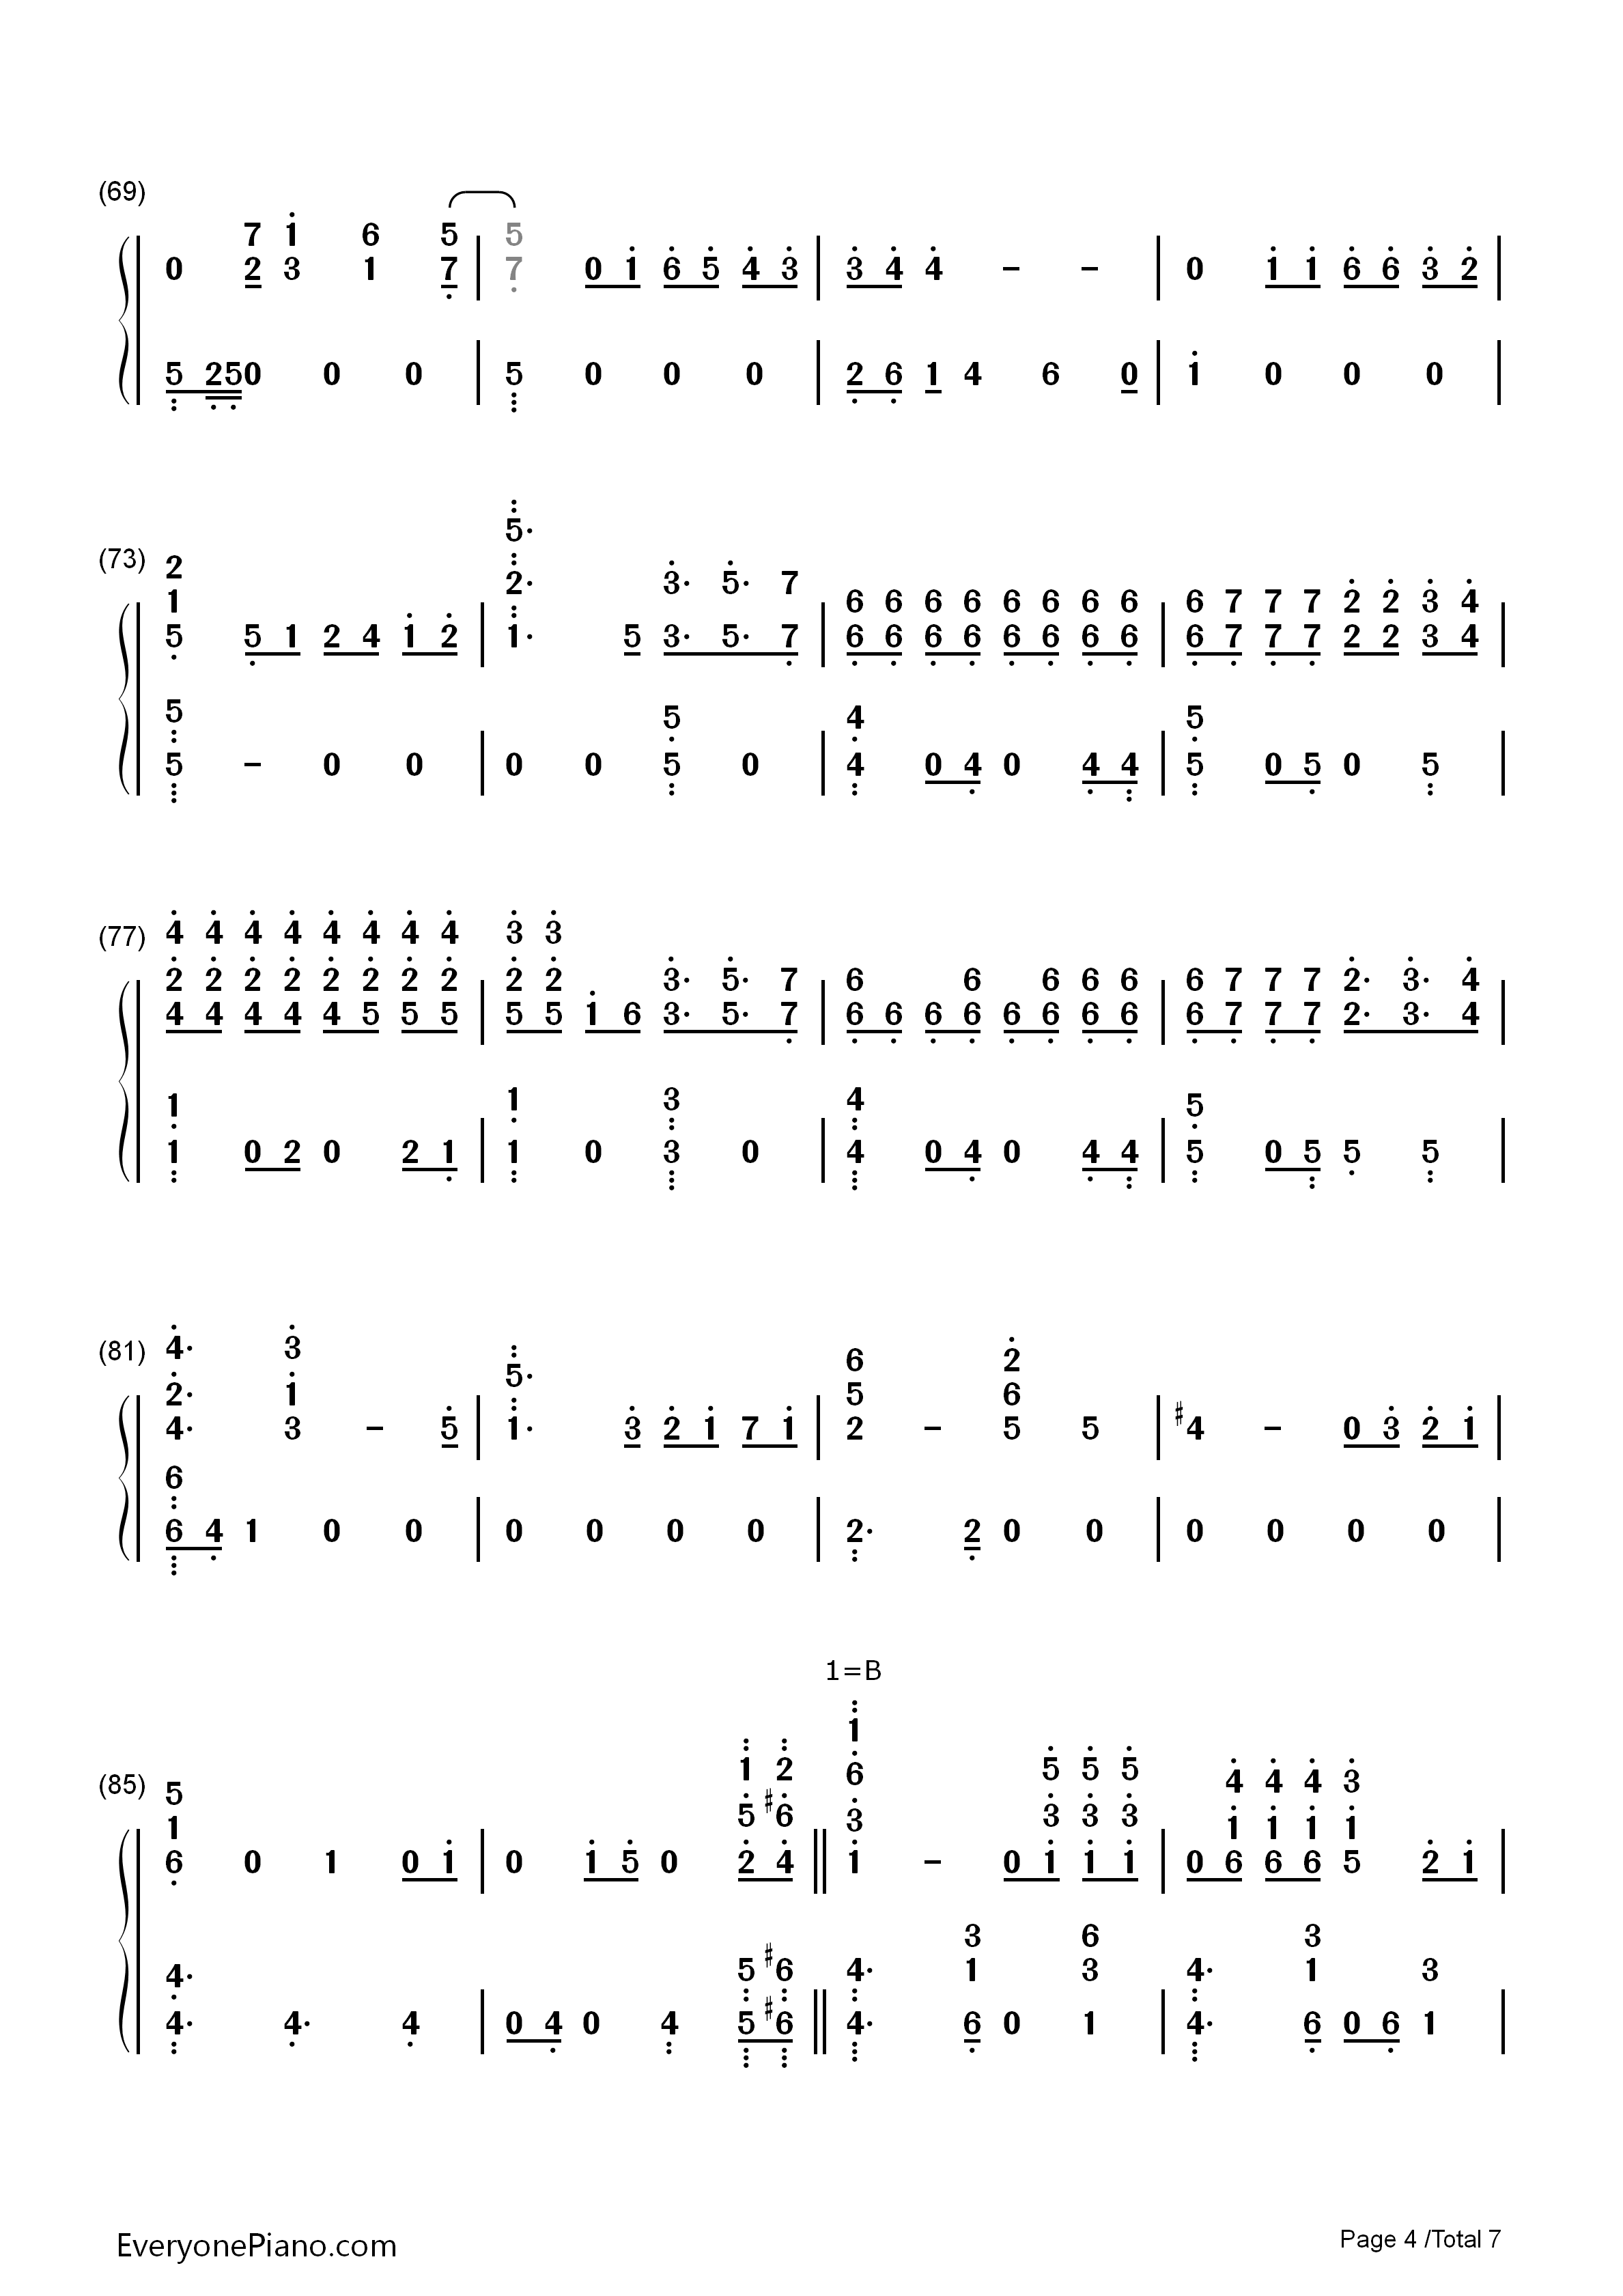 Miracles in december exo free piano sheet music piano chords miracles in december exo numbered musical notation preview 4 hexwebz Gallery